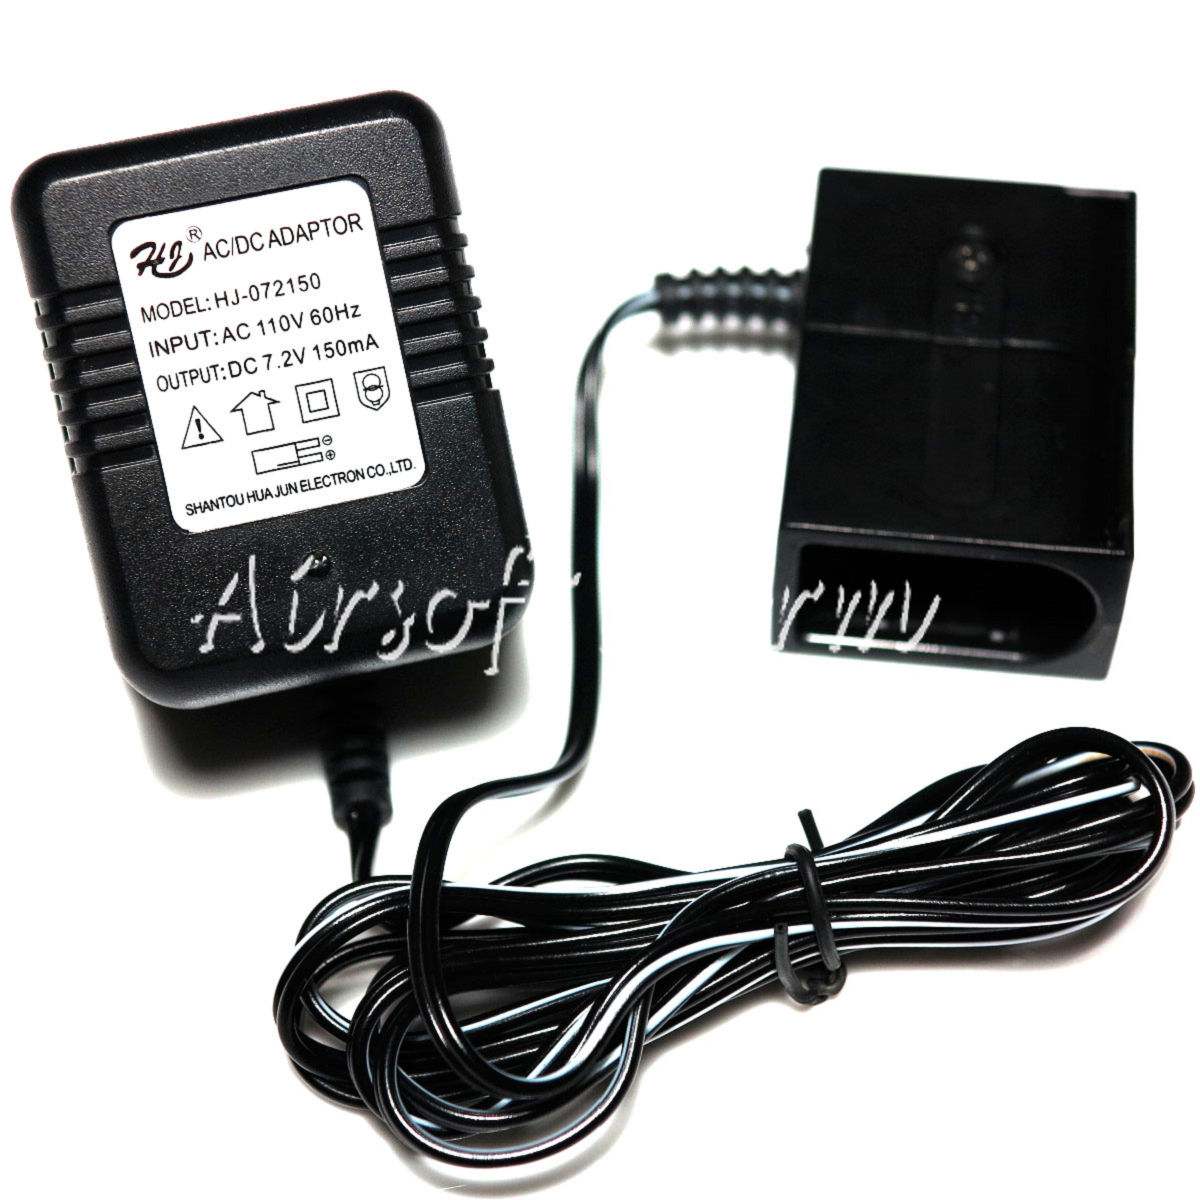 WELL 7.2V Micro Mini Battery Charger for R4 MP7/Marui G18 (110V)